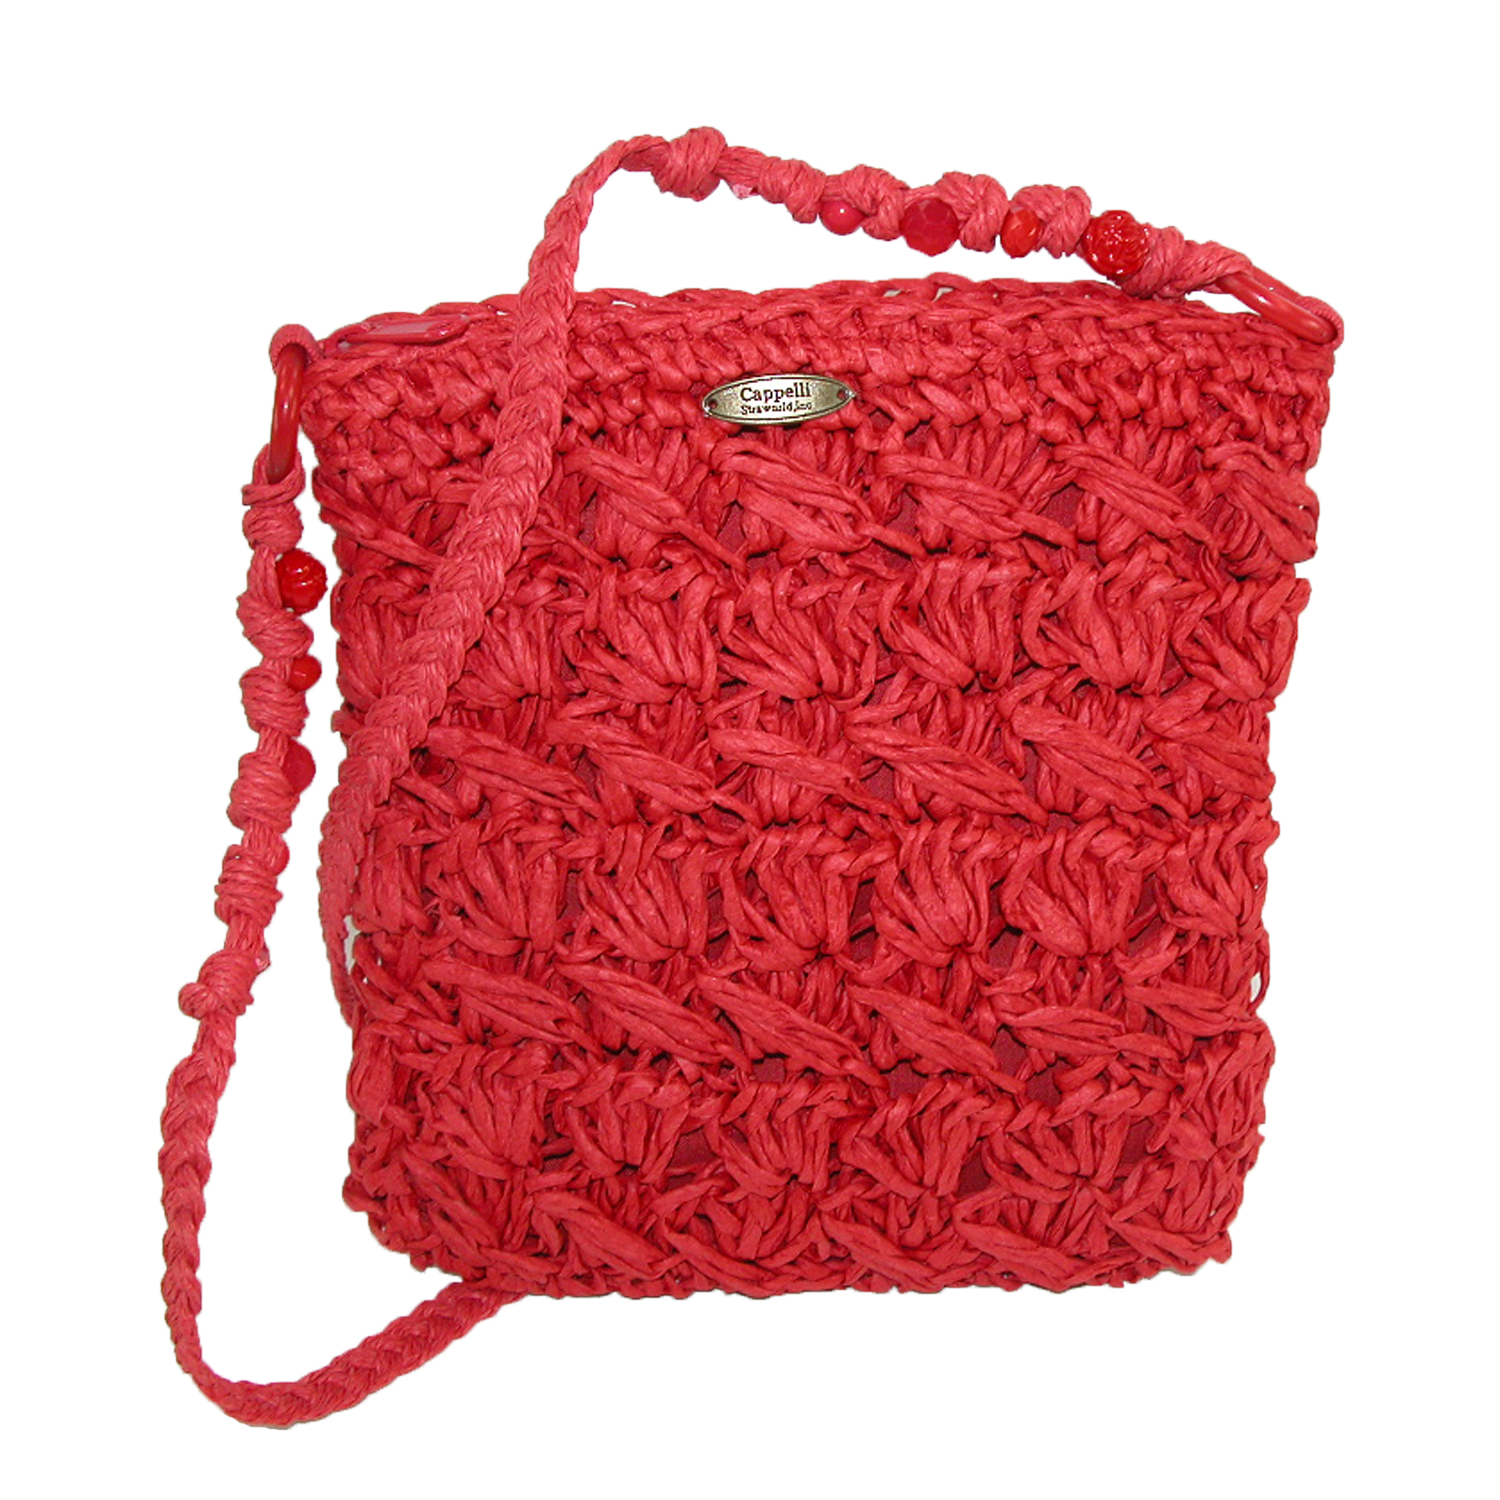 Cappelli  Women's Crocheted Crossbody Handbag with Beaded Strap